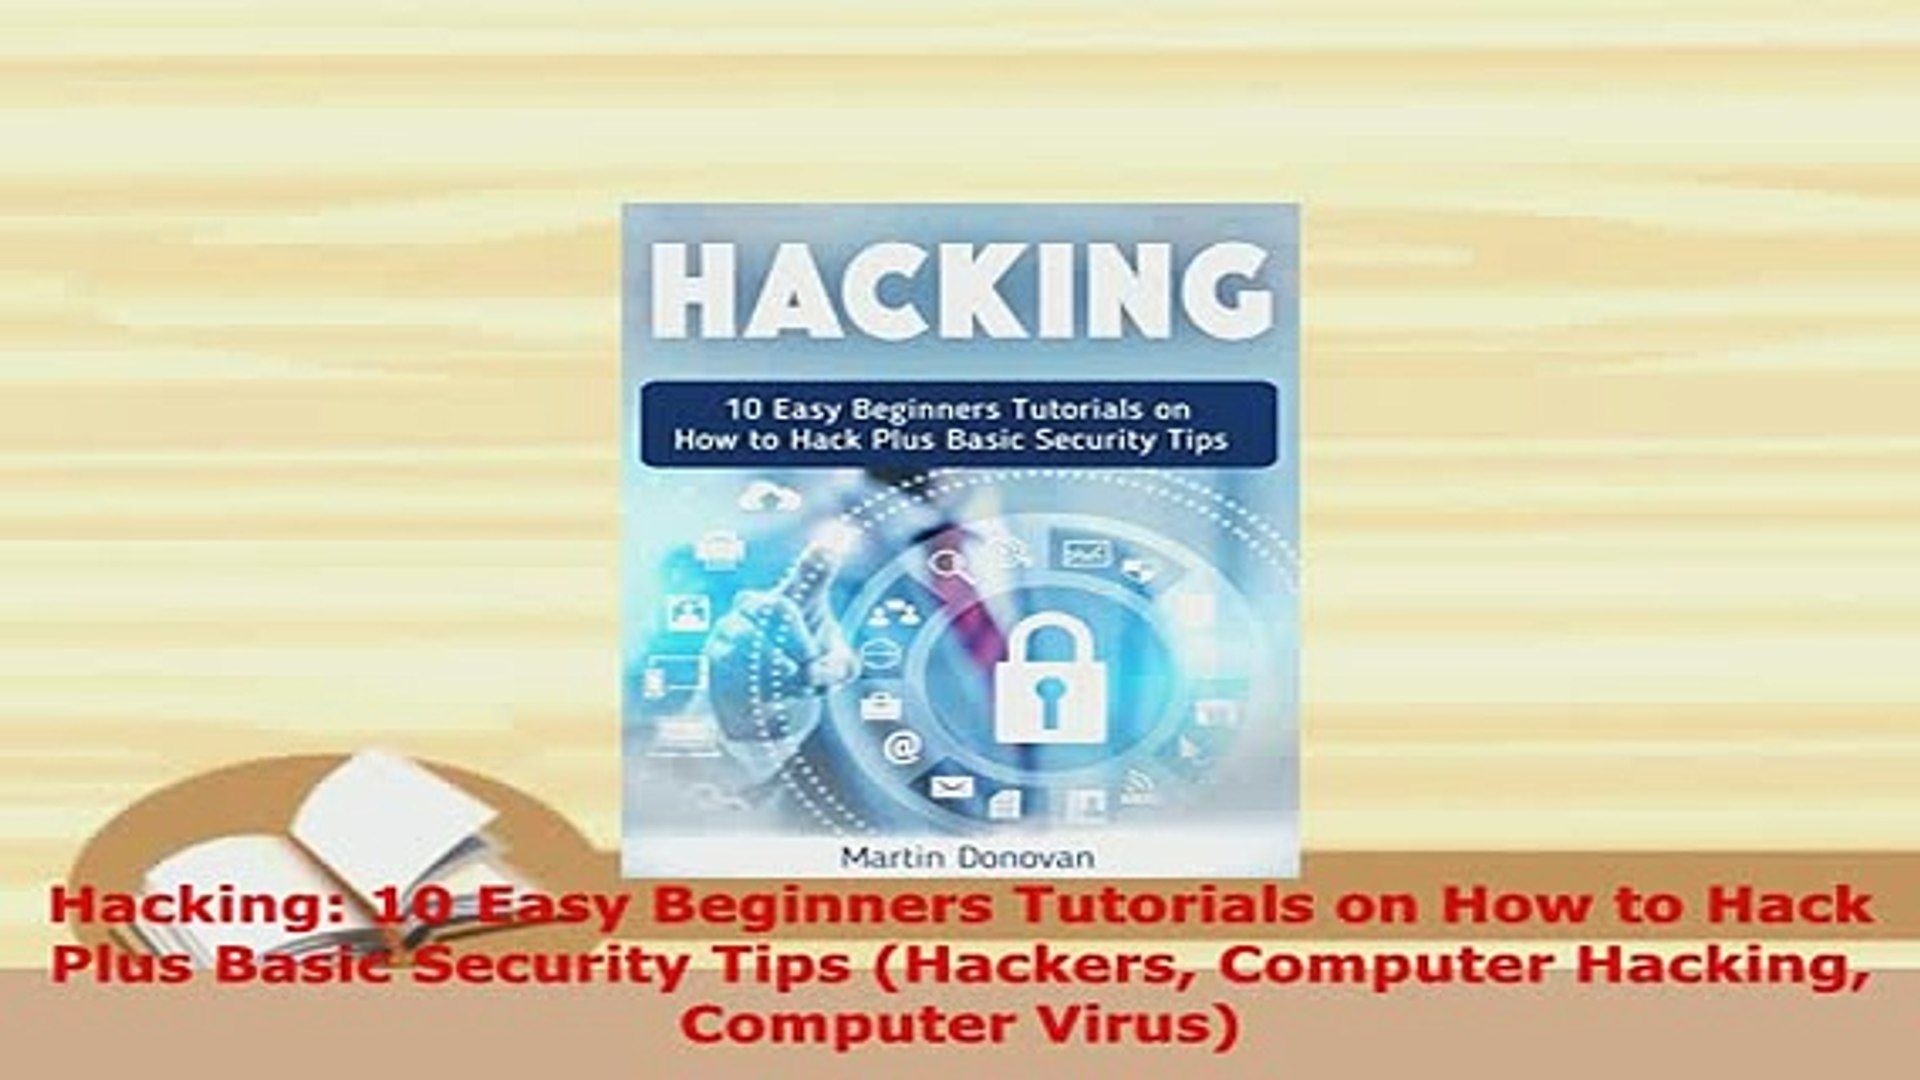 Download  Hacking 10 Easy Beginners Tutorials on How to Hack Plus Basic Security Tips Hackers  Read